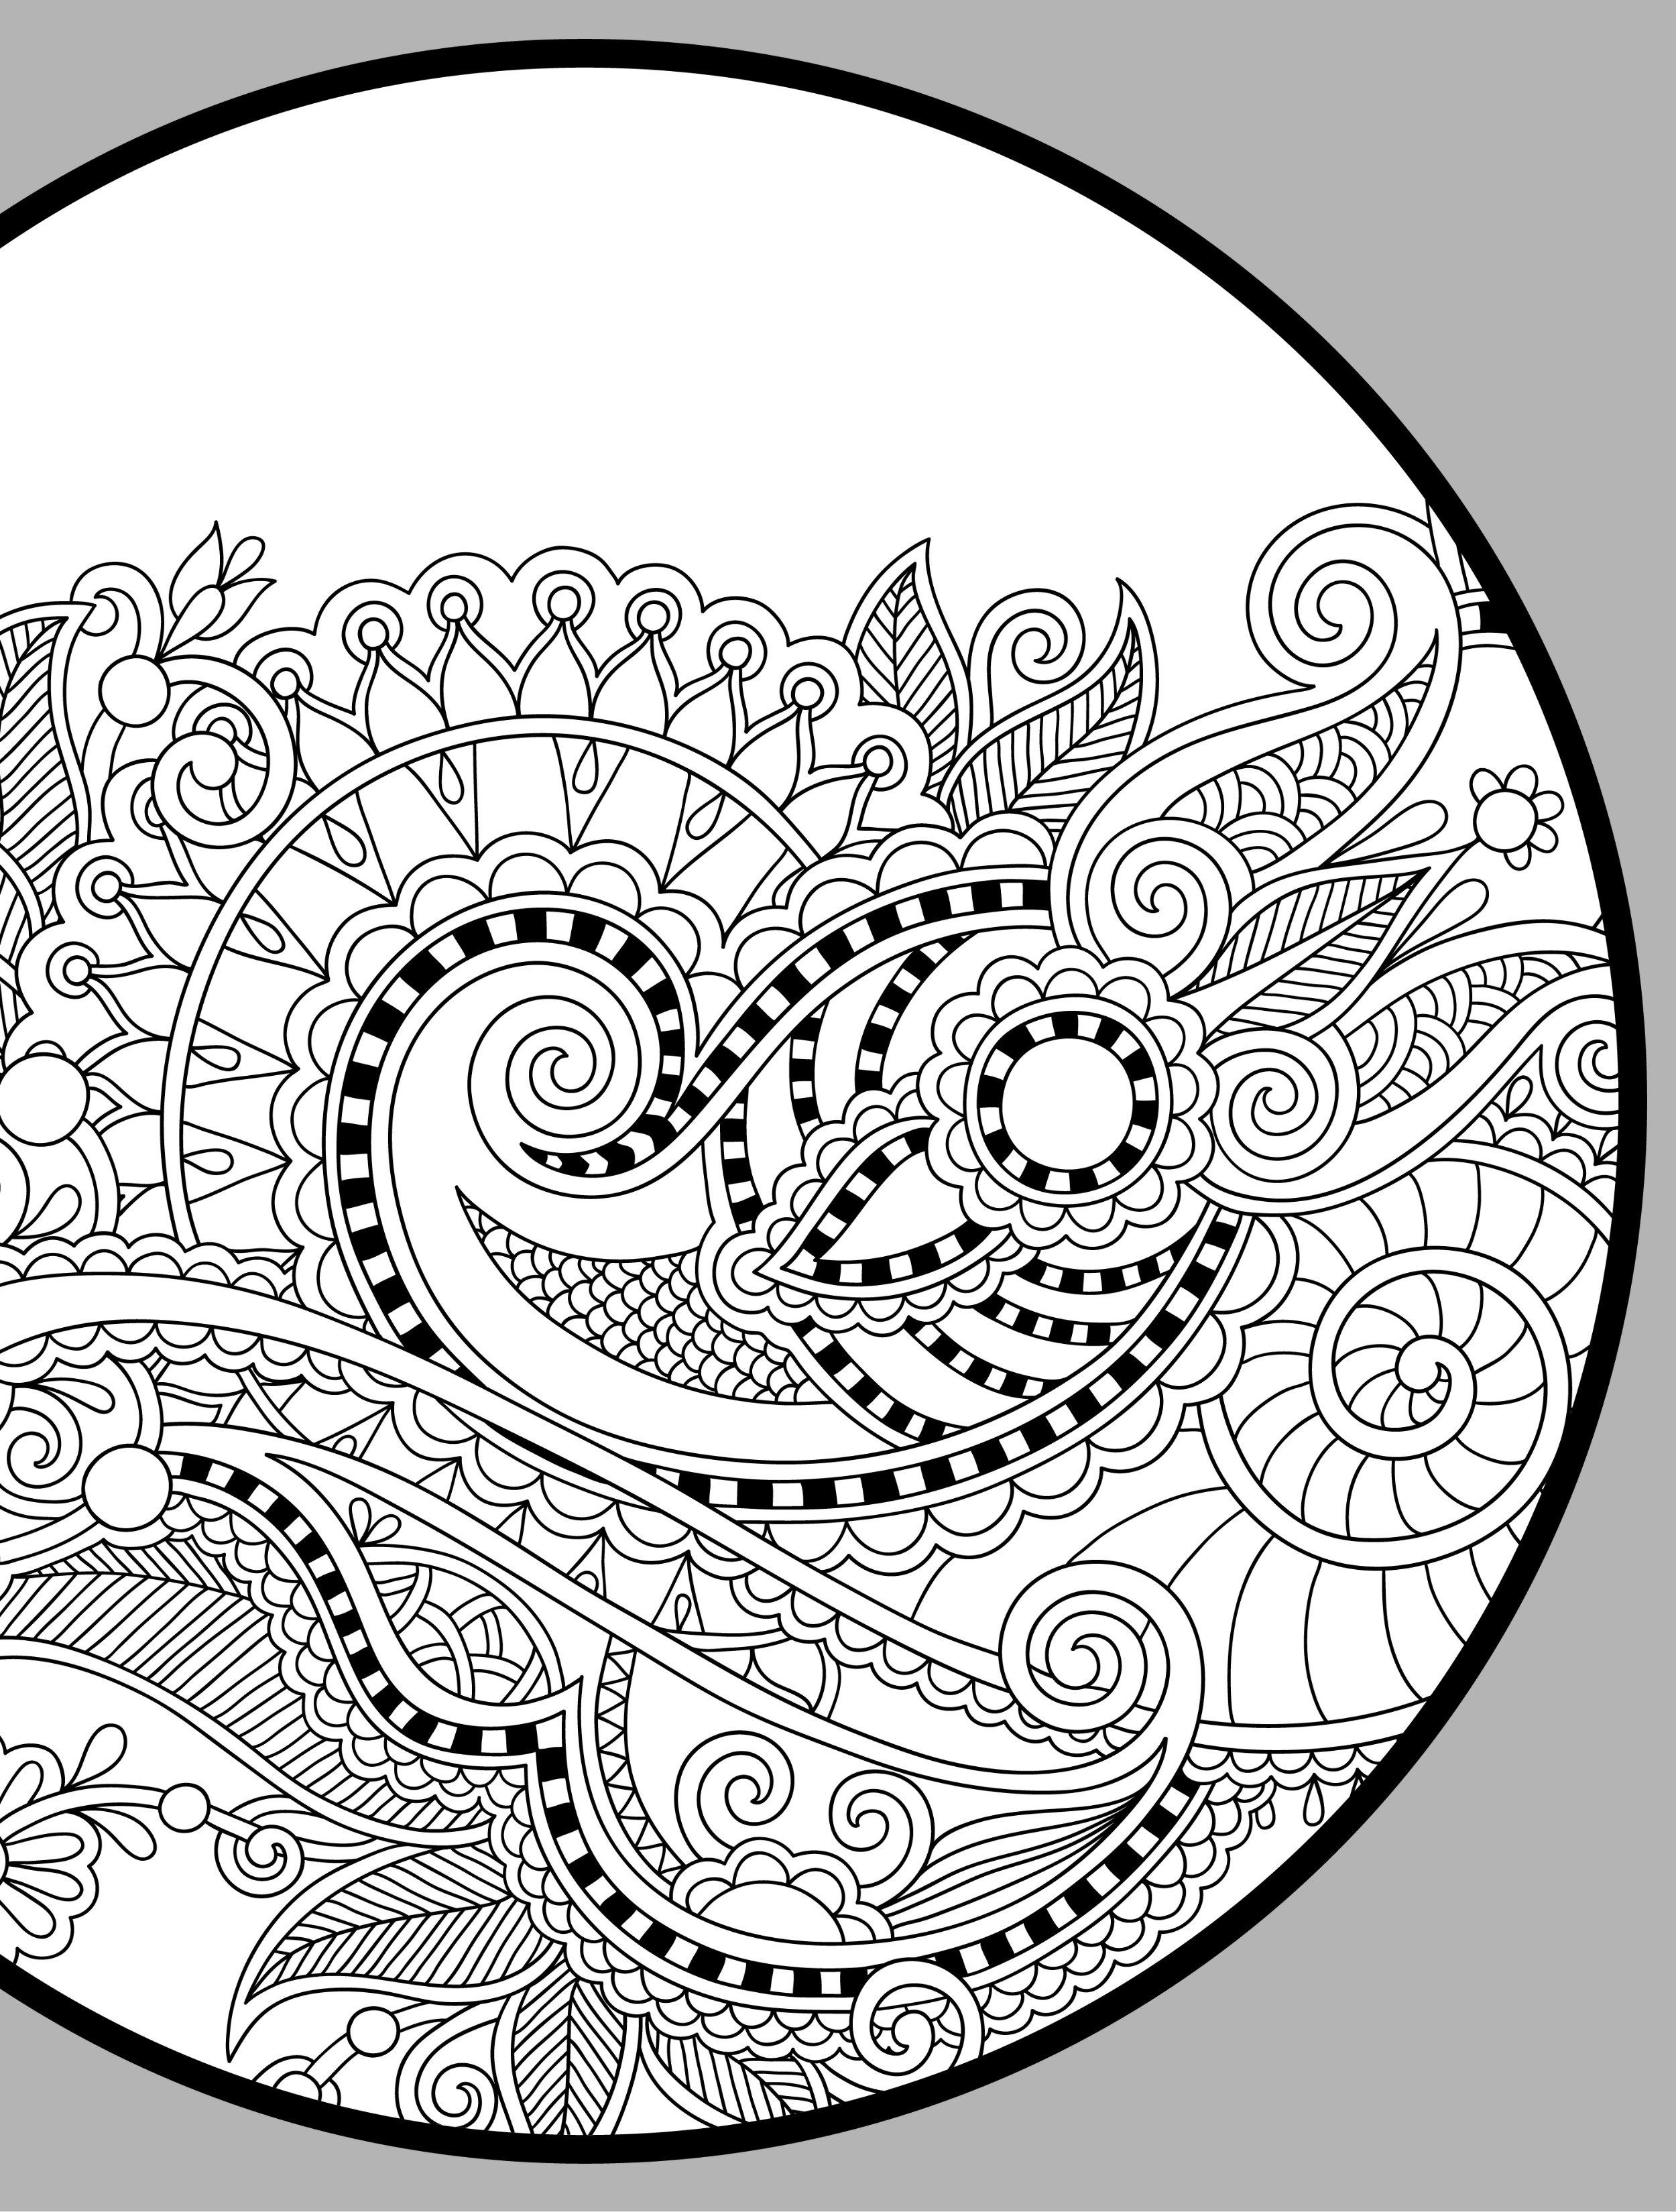 zentangle coloring pages free printable printable download coloring page hand drawn zentangle free pages coloring printable zentangle